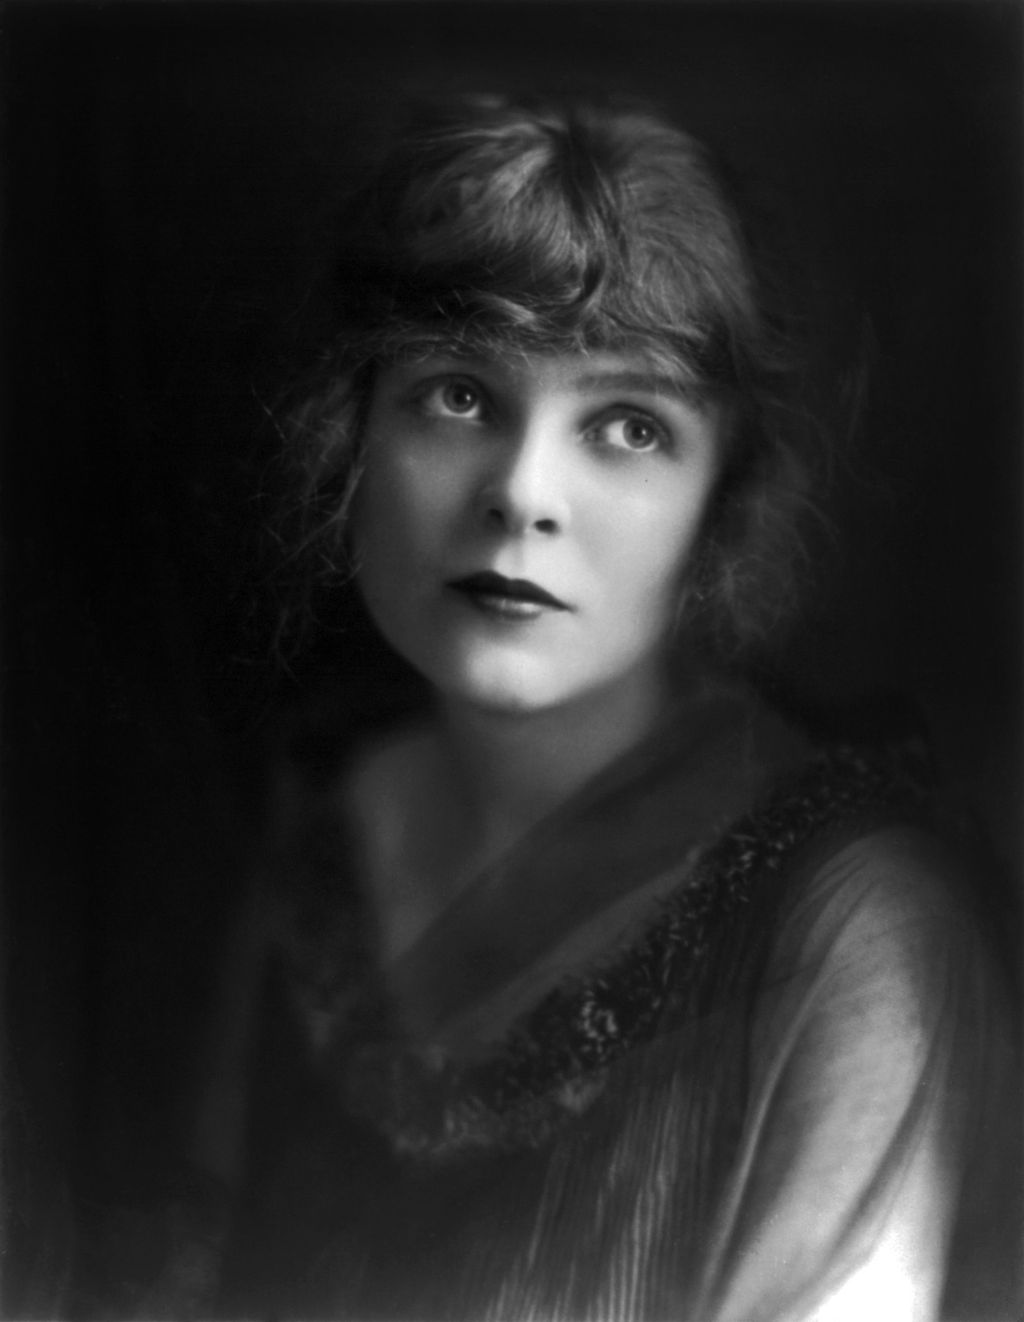 Blanche Sweet by unknown photographer, 1915